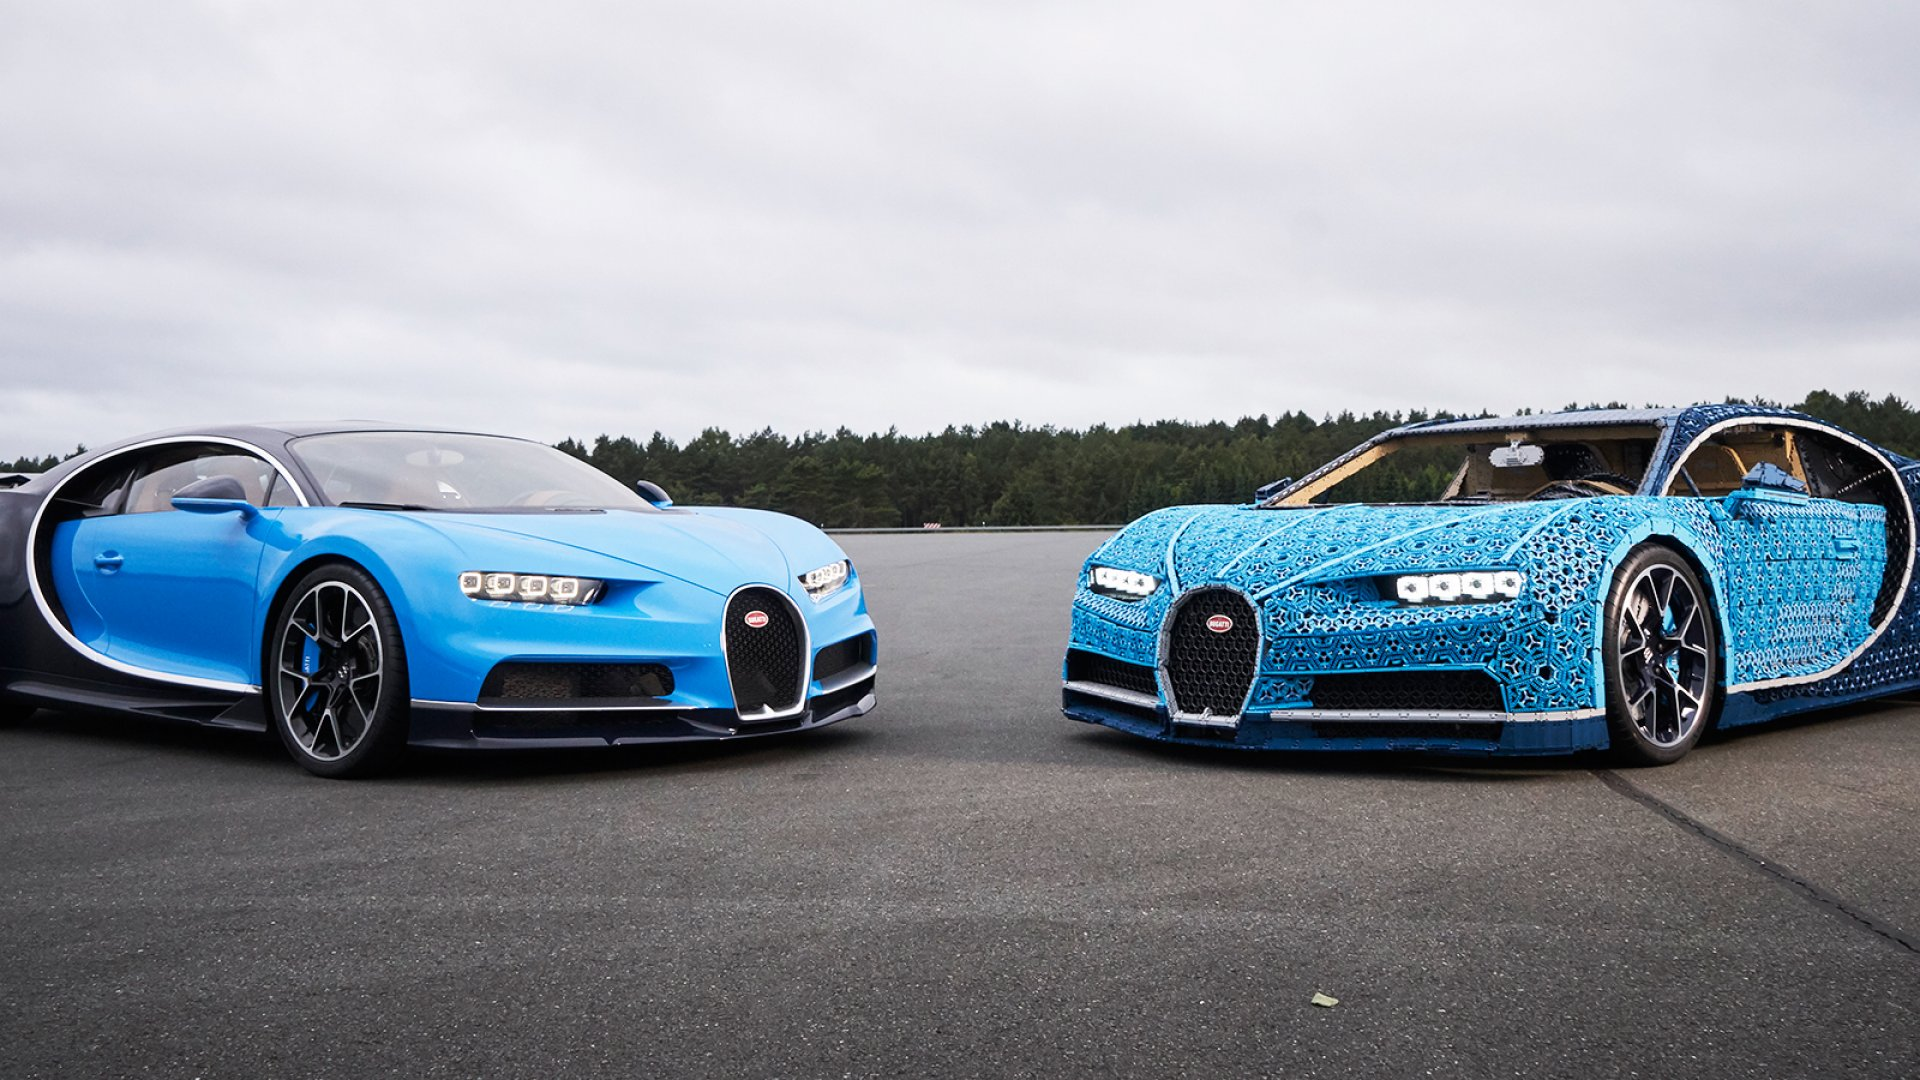 Lego Nails Another Smart Marketing Opportunity With A Life Size Drivable Bugatti Chiron Car Inc Com